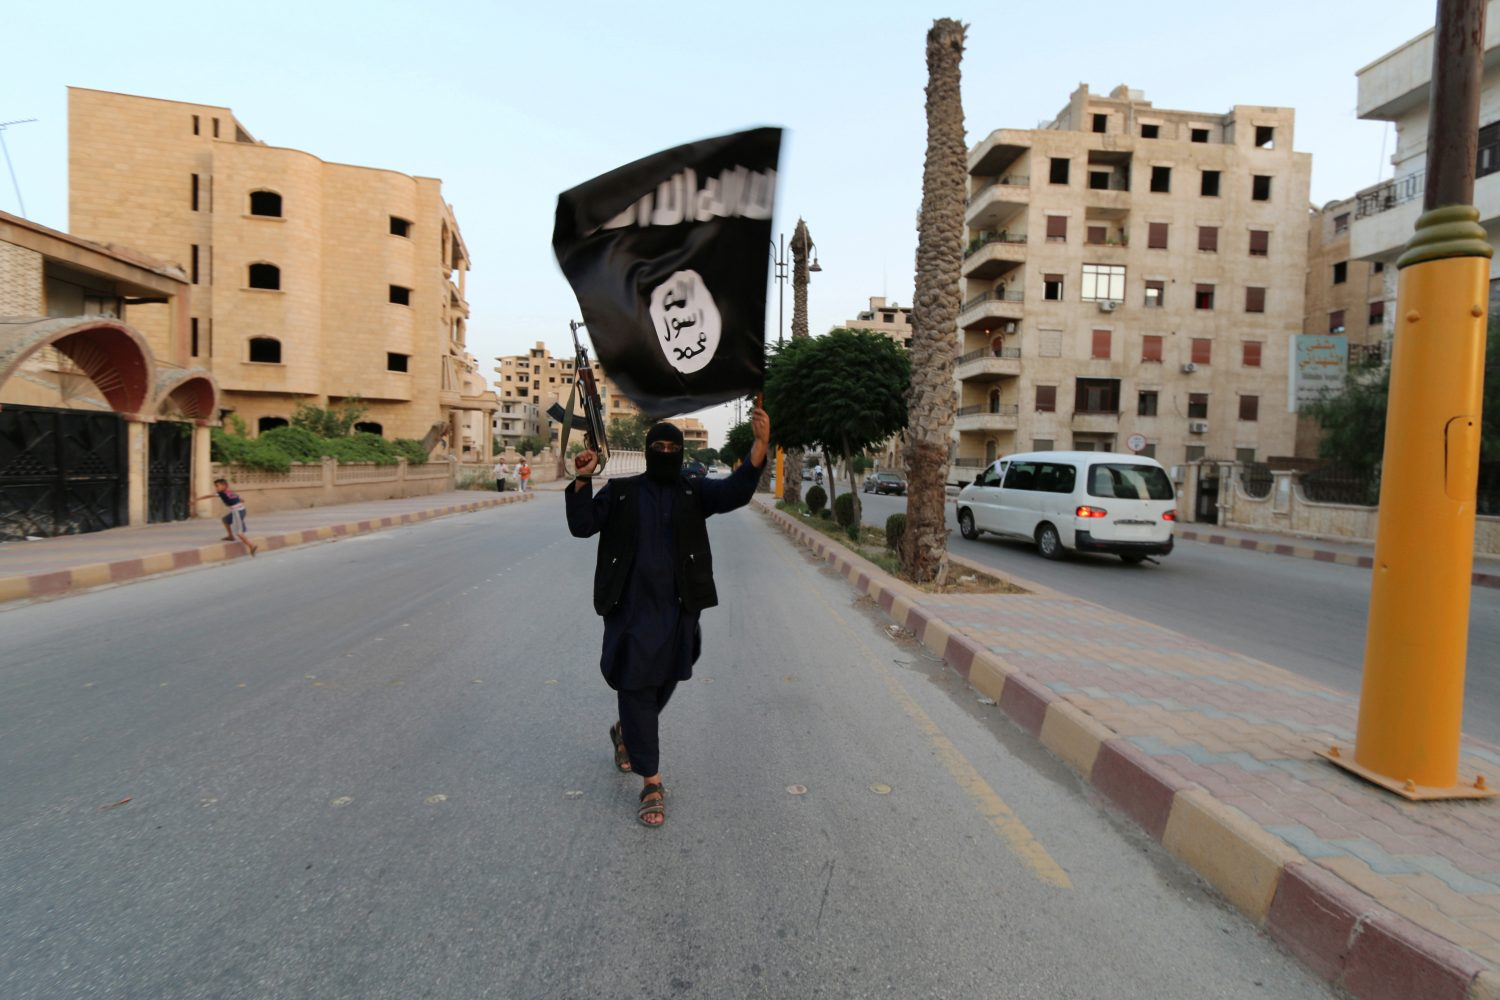 FILE PHOTO - A member loyal to the Islamic State in Iraq and the Levant (ISIL) waves an ISIL flag in Raqqa, Syria June 29, 2014. REUTERS/Stringer/File Photo